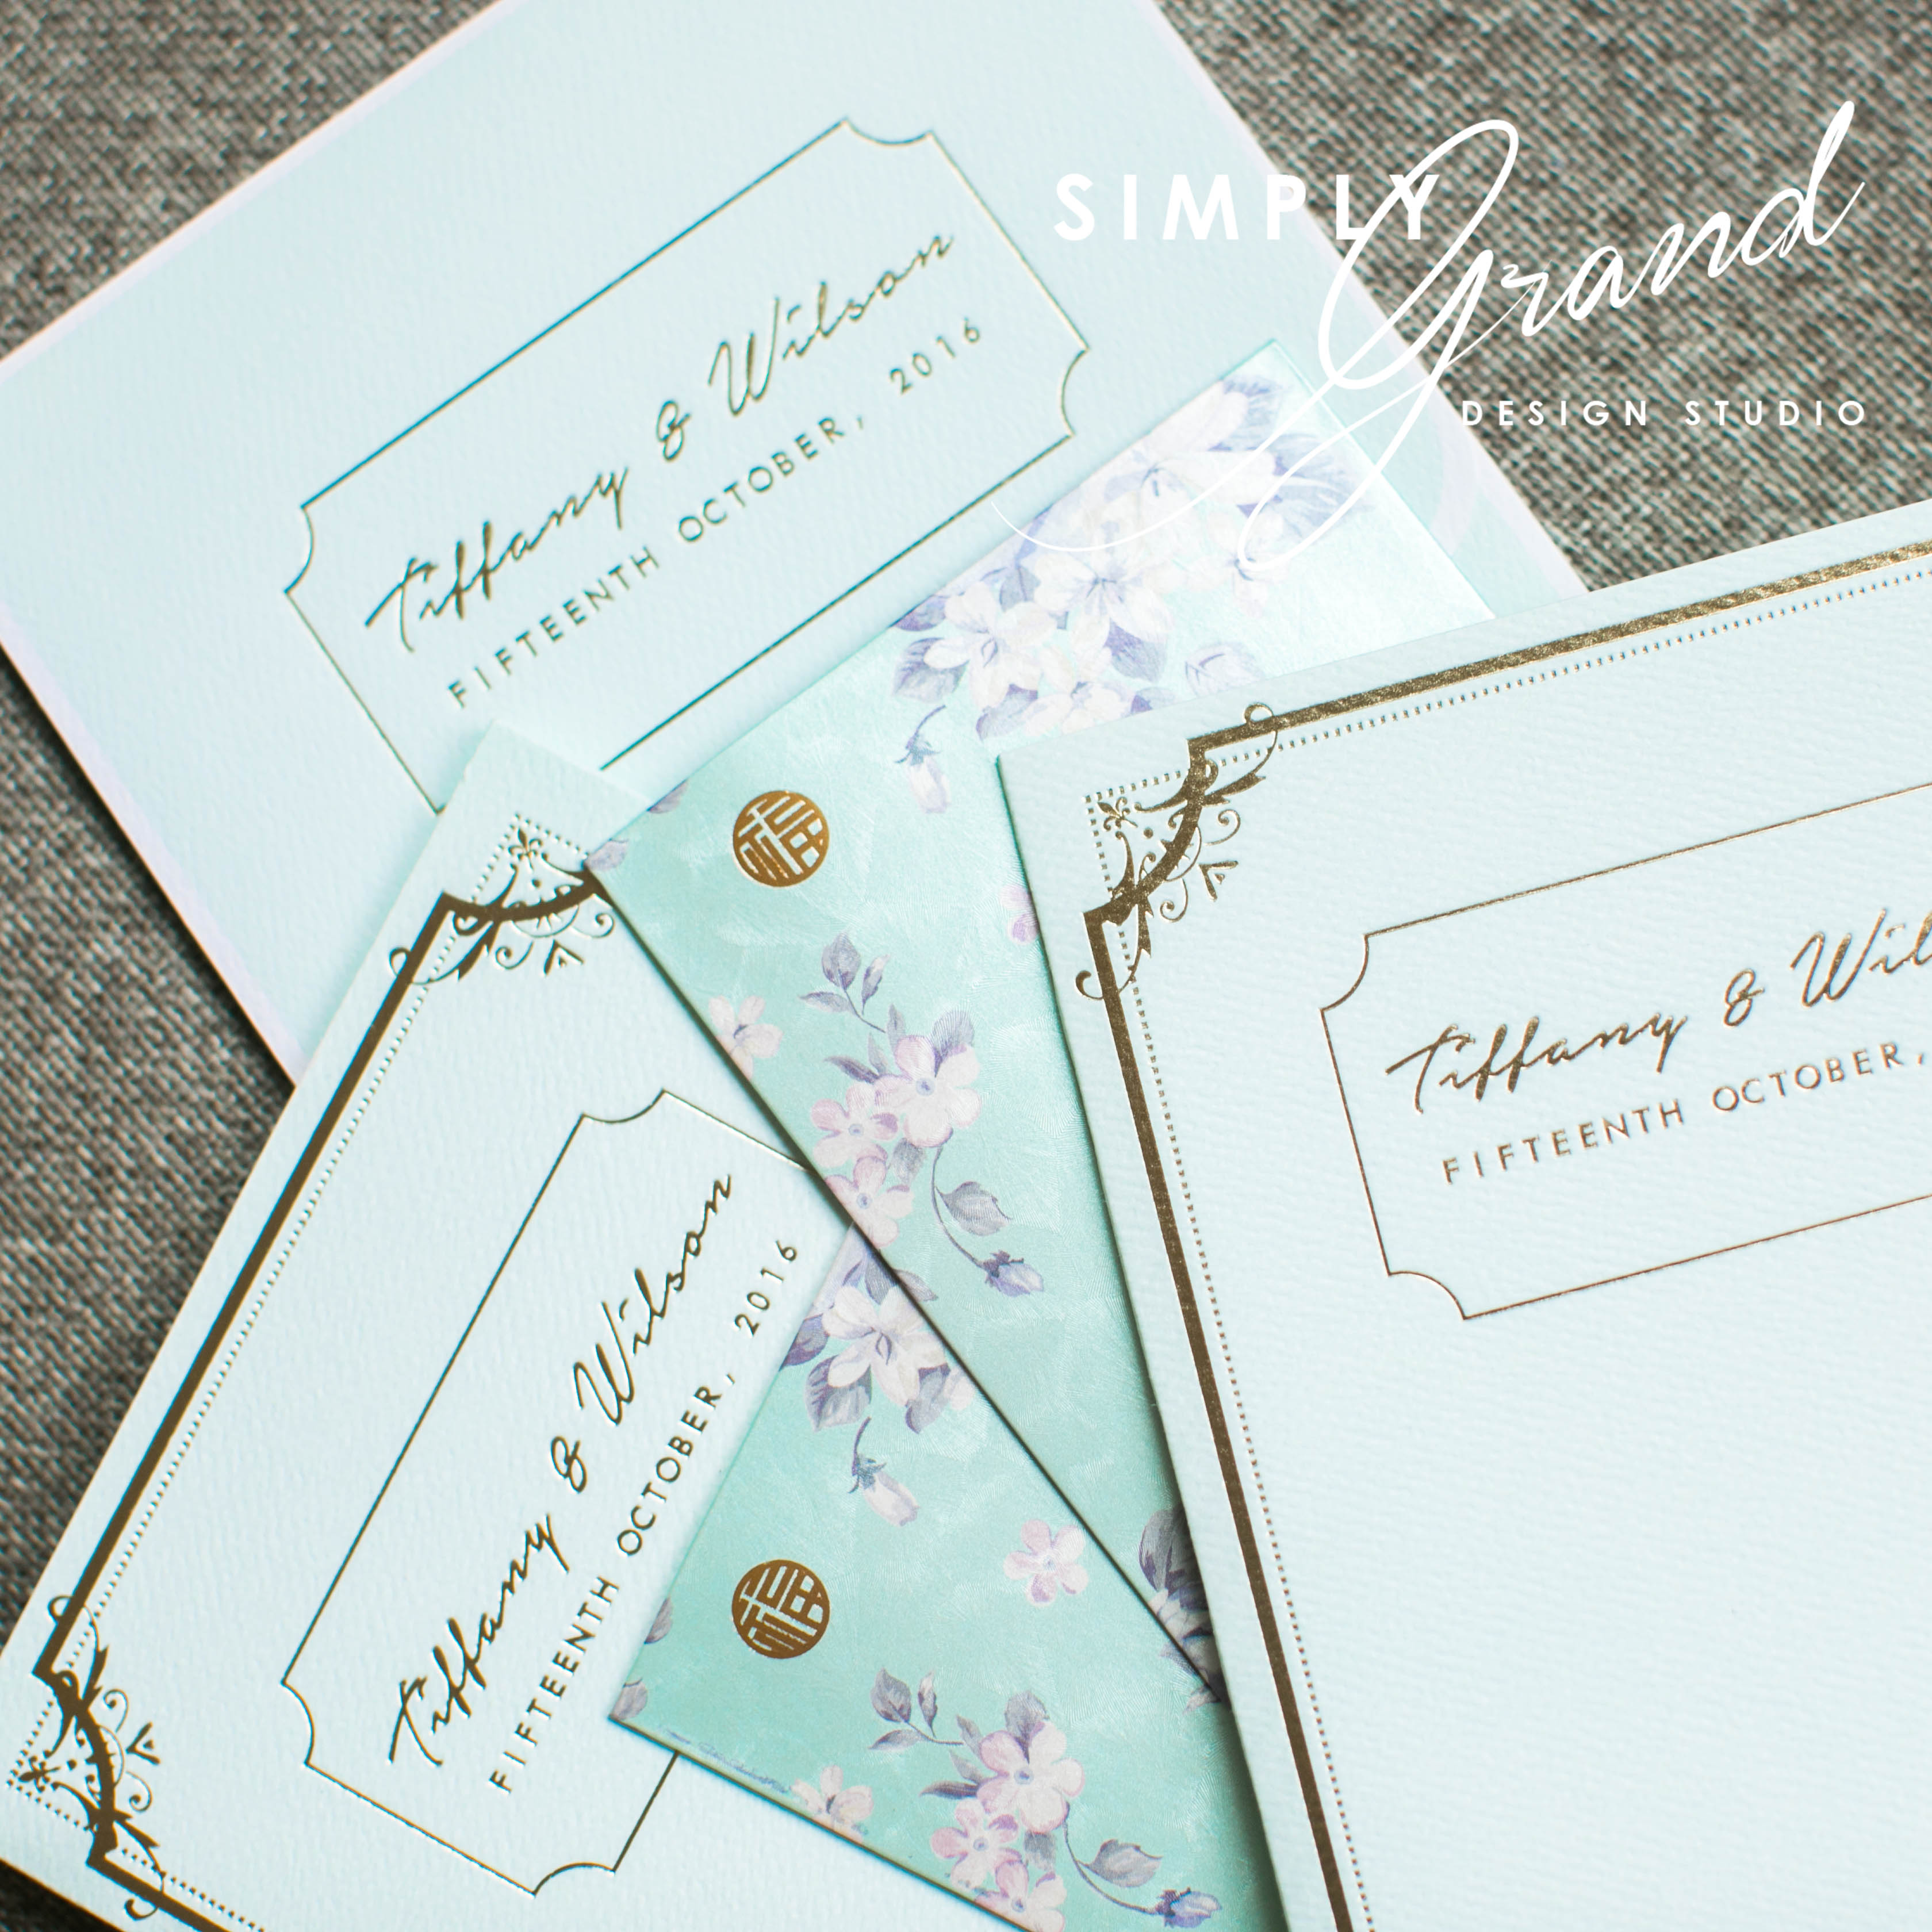 Simply_Grand_Production_Stationery_Invitation_Card_6_1